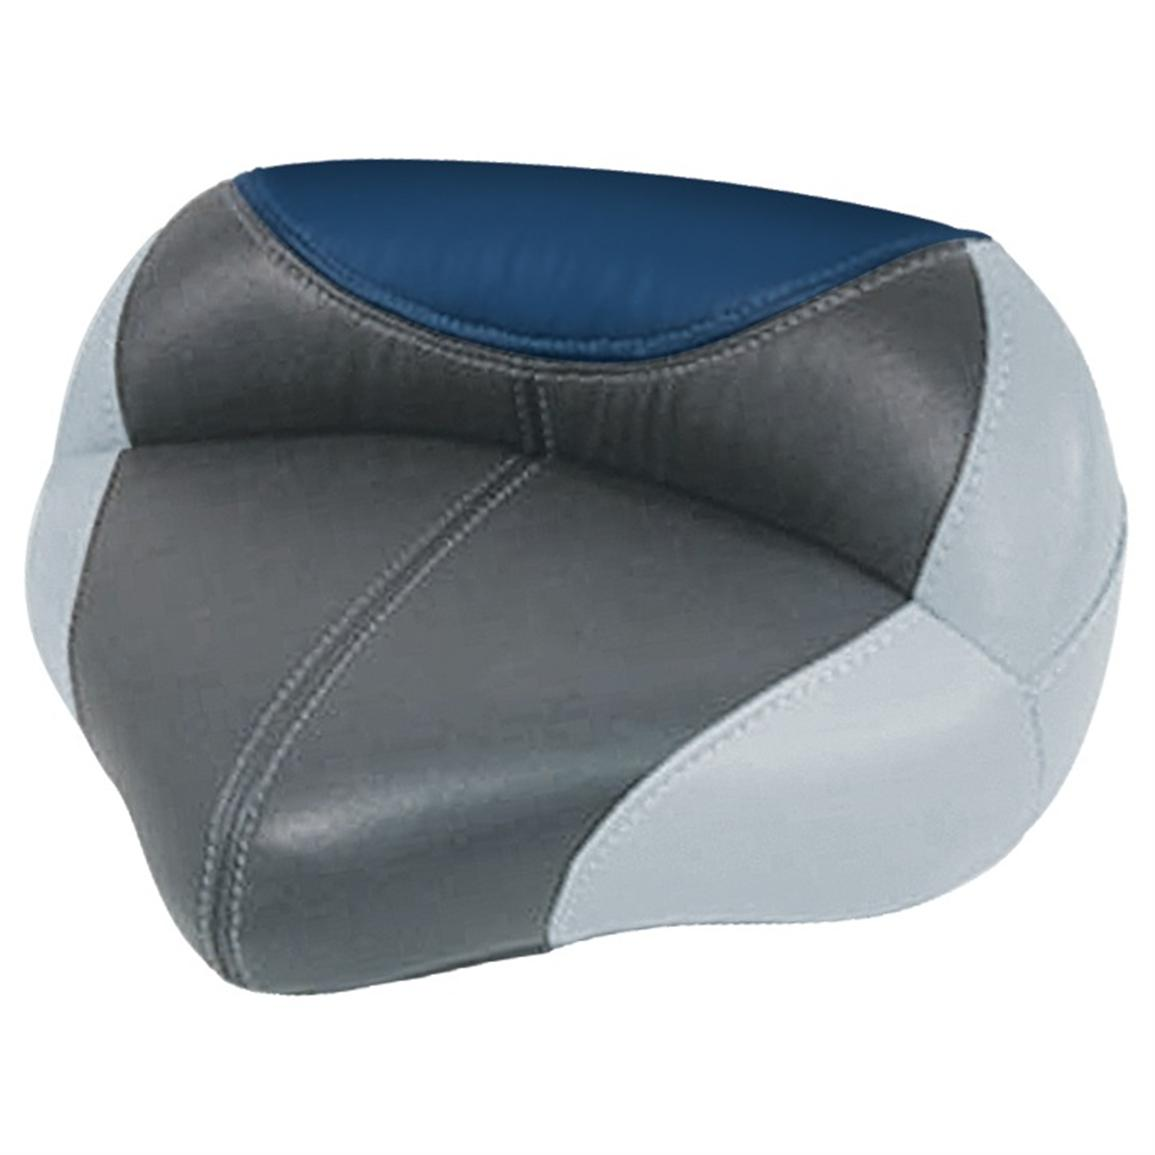 Wise® Blast-Off™ Series Traditional Pro Seat, Grey / Charcoal / Blue